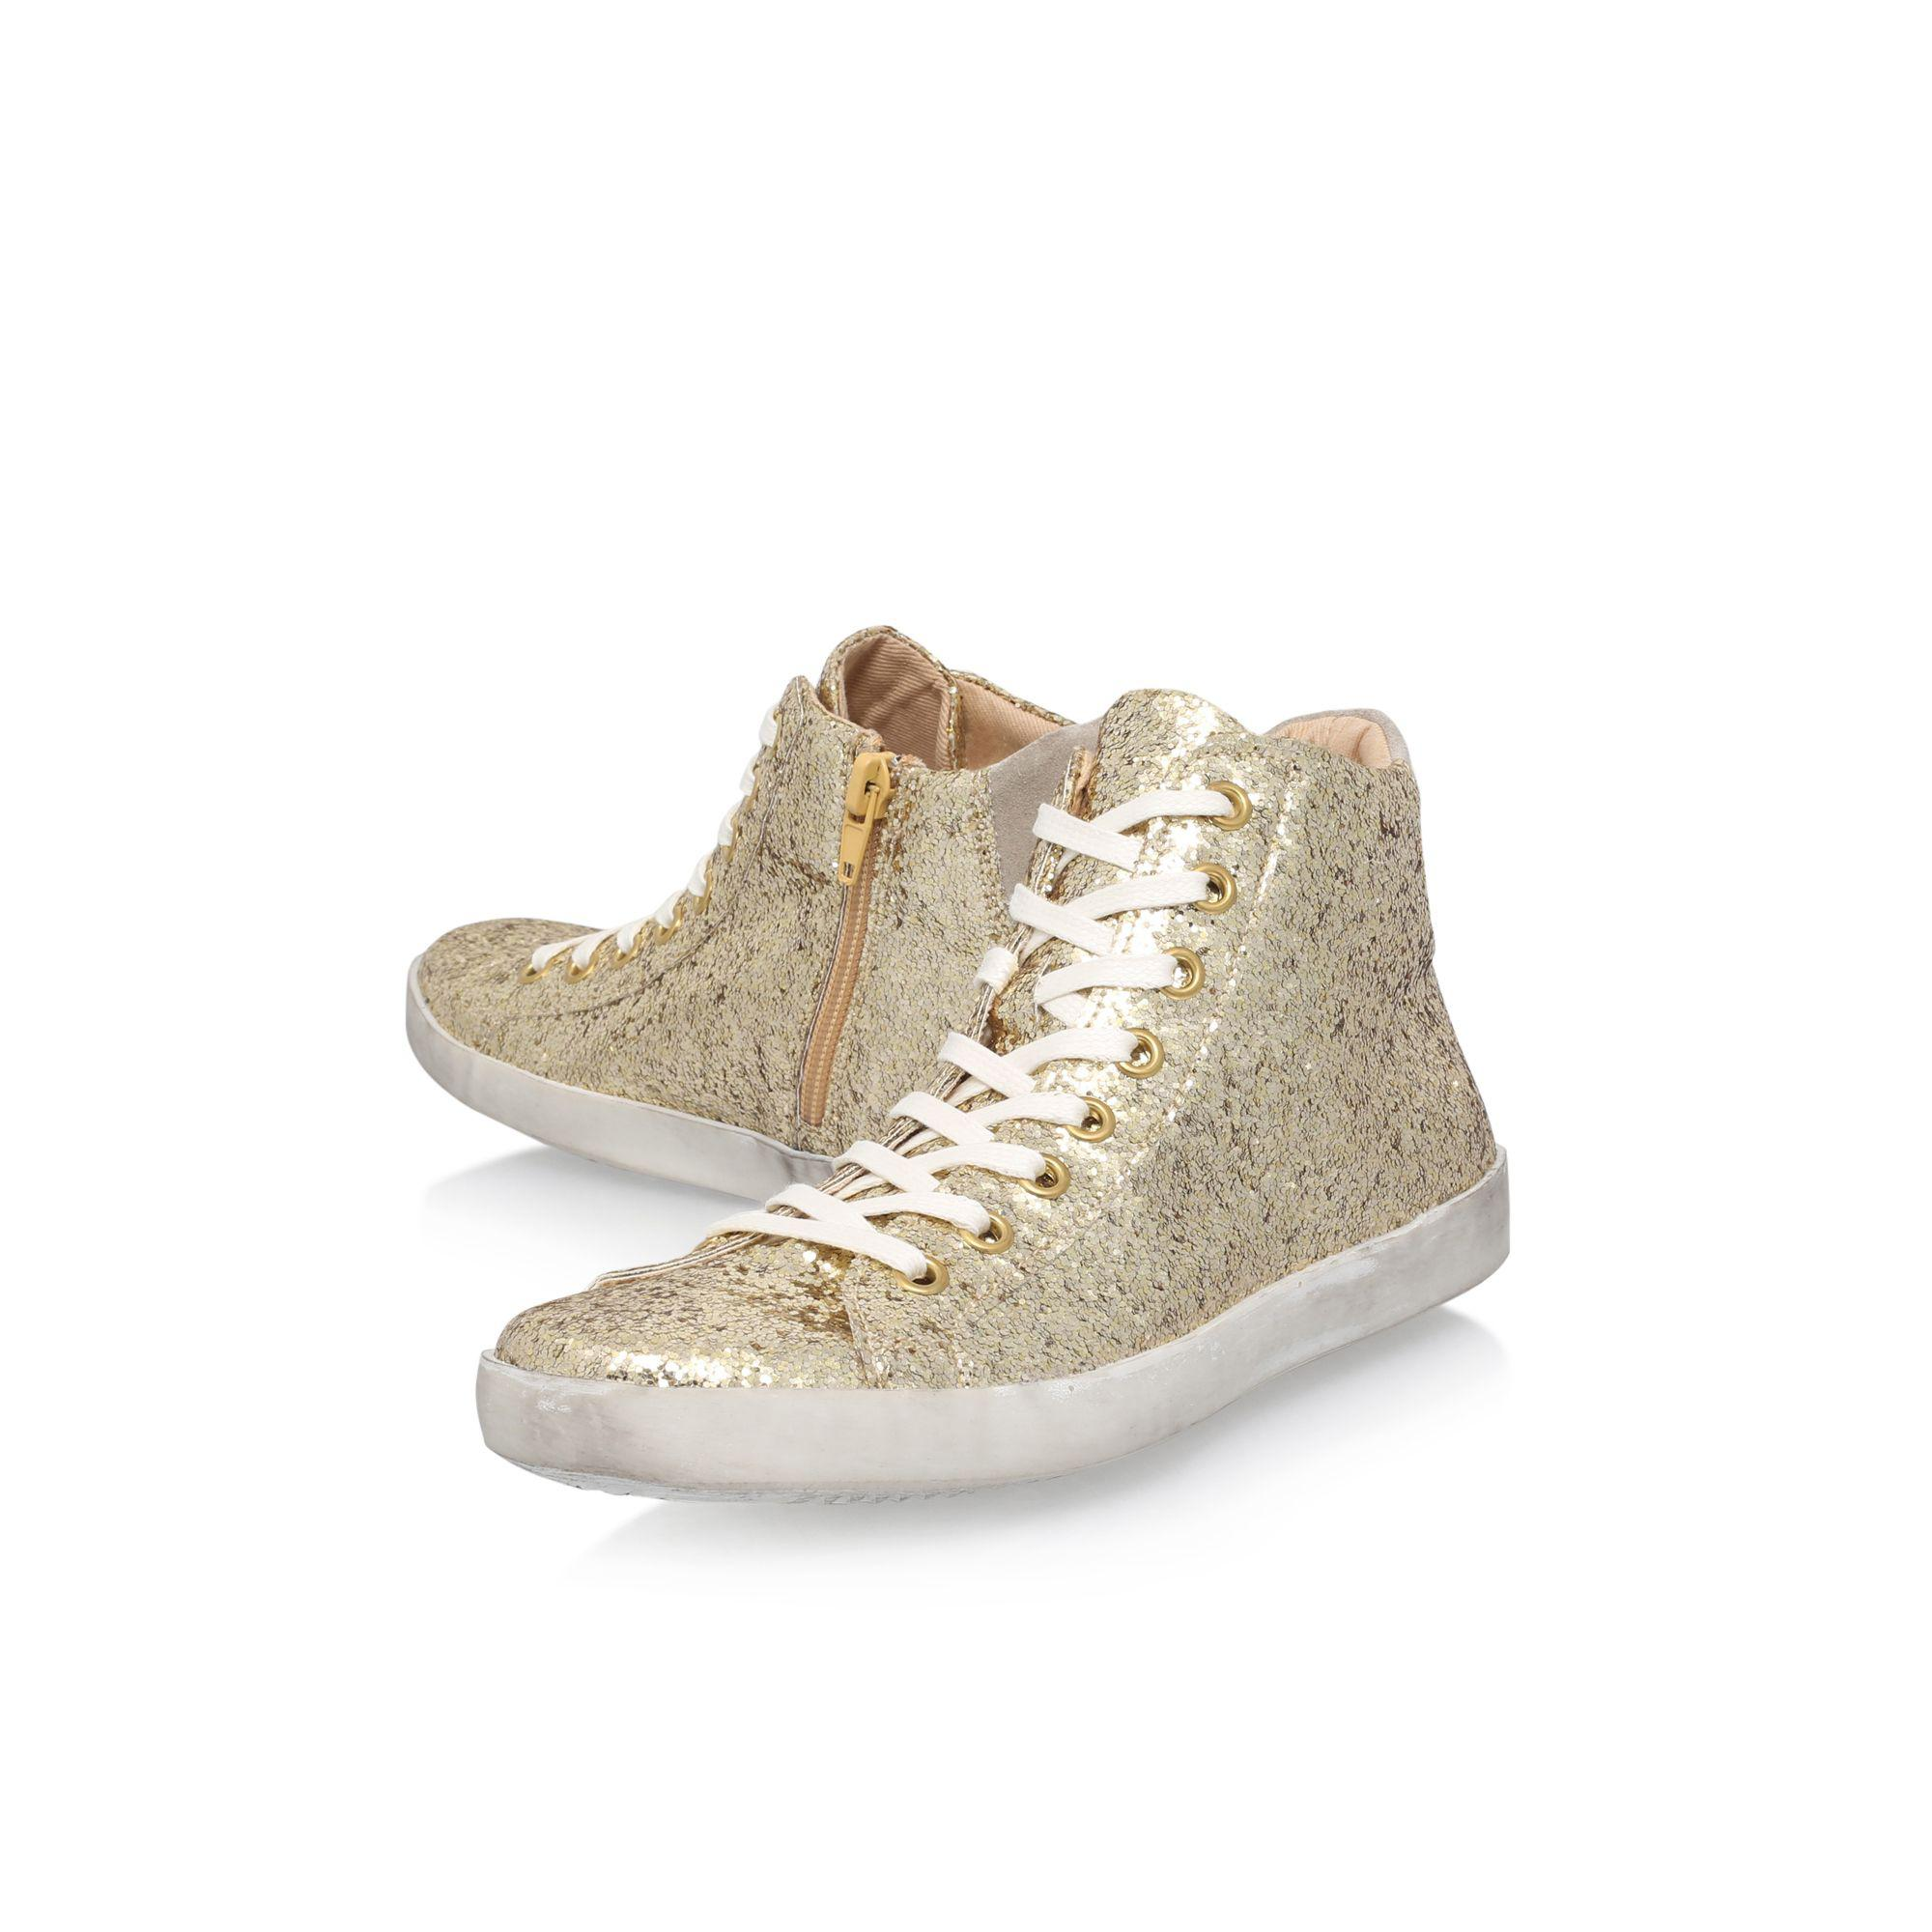 KG by Kurt Geiger Gold 'ladder' Flat Lace Up Sneakers in Metallic